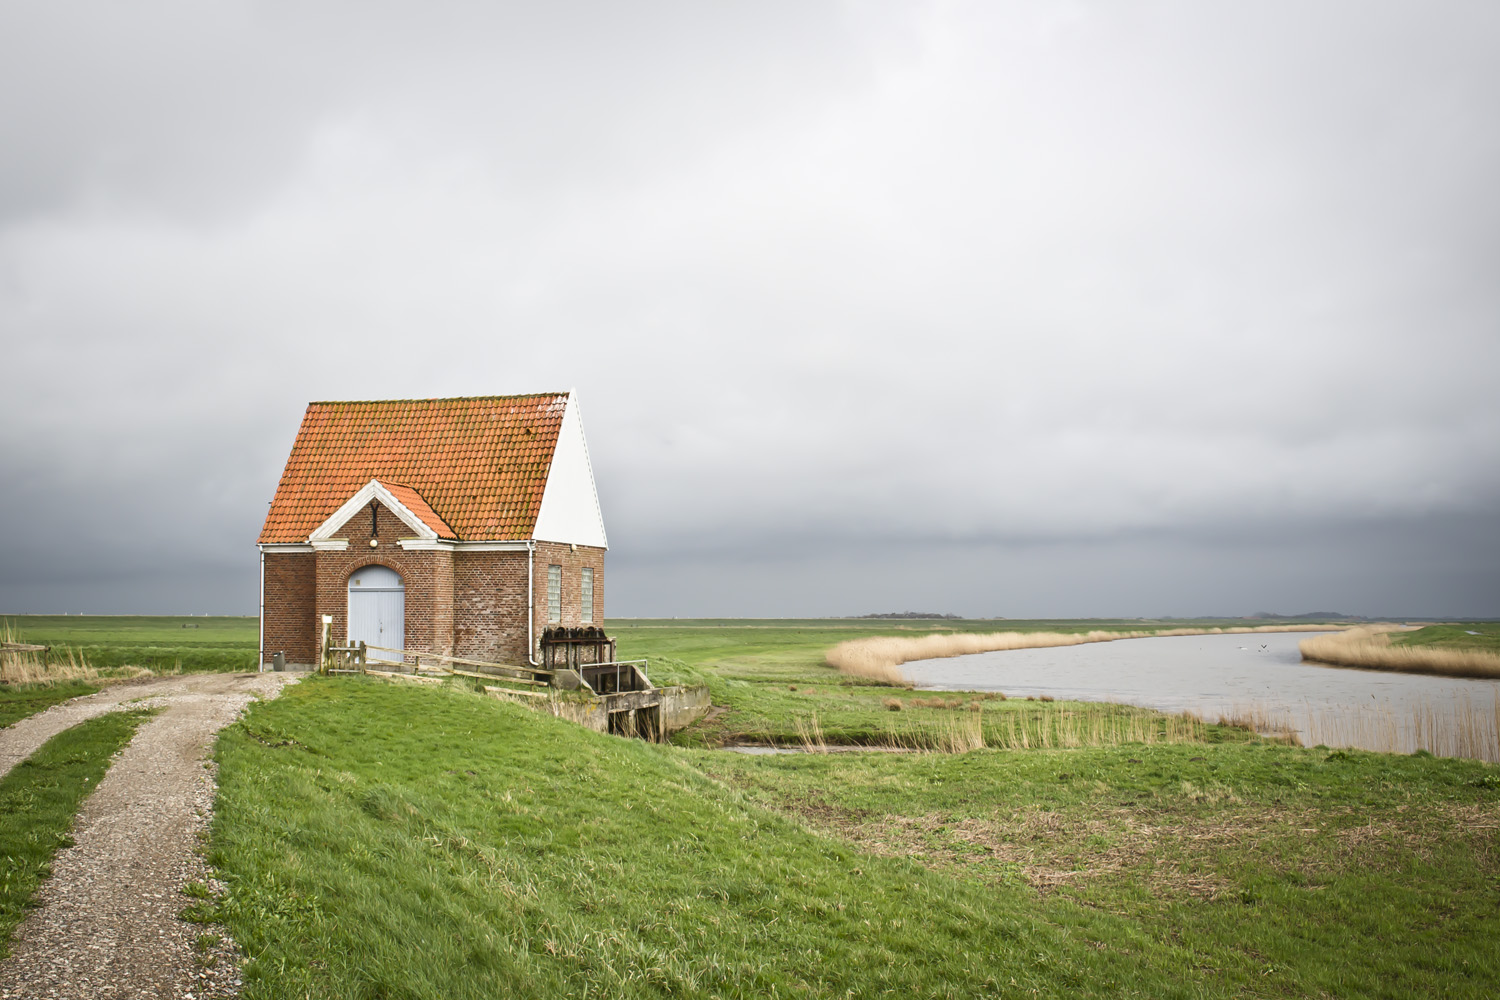 Dream House. • Little brick house in Denmark • traveling around the Europe on baraperglova.com